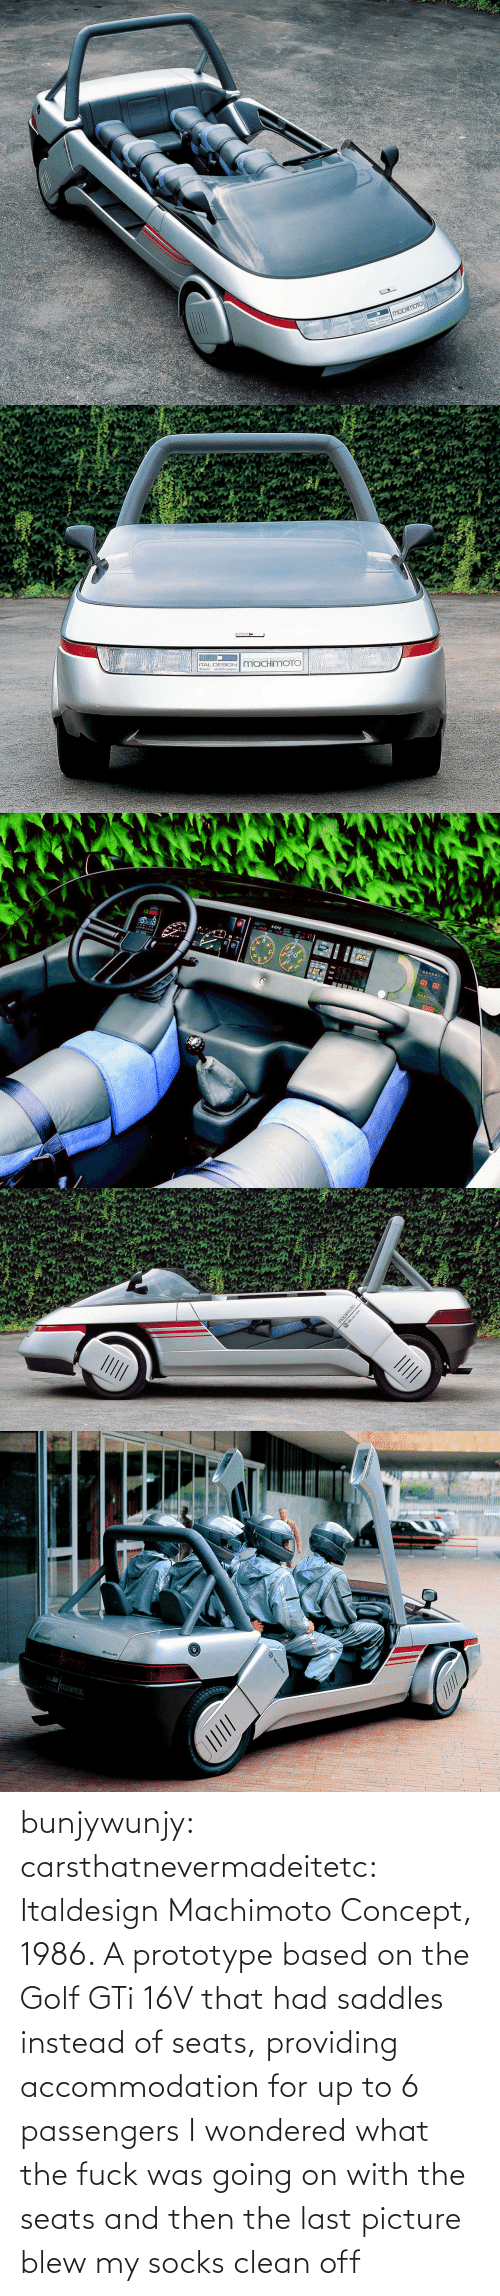 Socks: bunjywunjy:  carsthatnevermadeitetc:  Italdesign Machimoto Concept, 1986. A prototype based on the Golf GTi 16V that had saddles instead of seats, providing accommodation for up to 6 passengers   I wondered what the fuck was going on with the seats and then the last picture blew my socks clean off